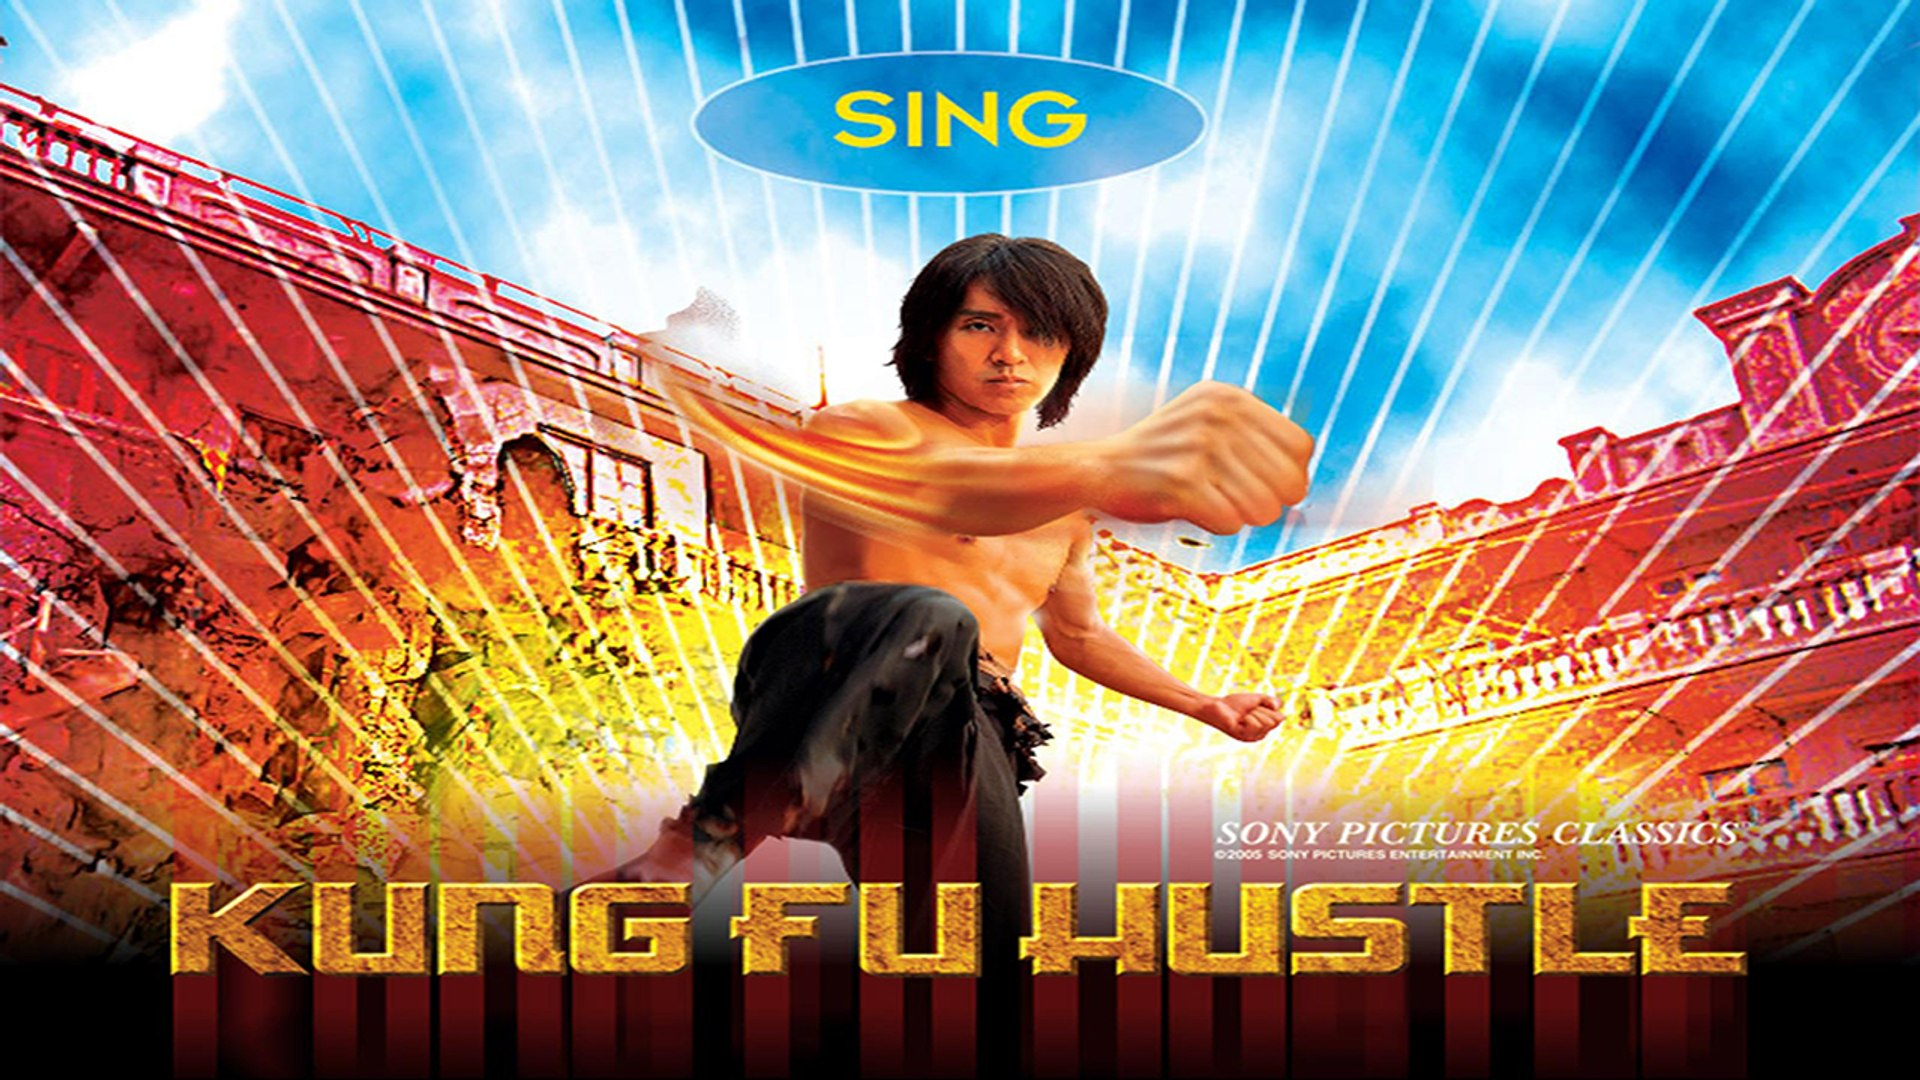 Kung Fu Hustle - Stephen Chow - Action Comedy Film - video